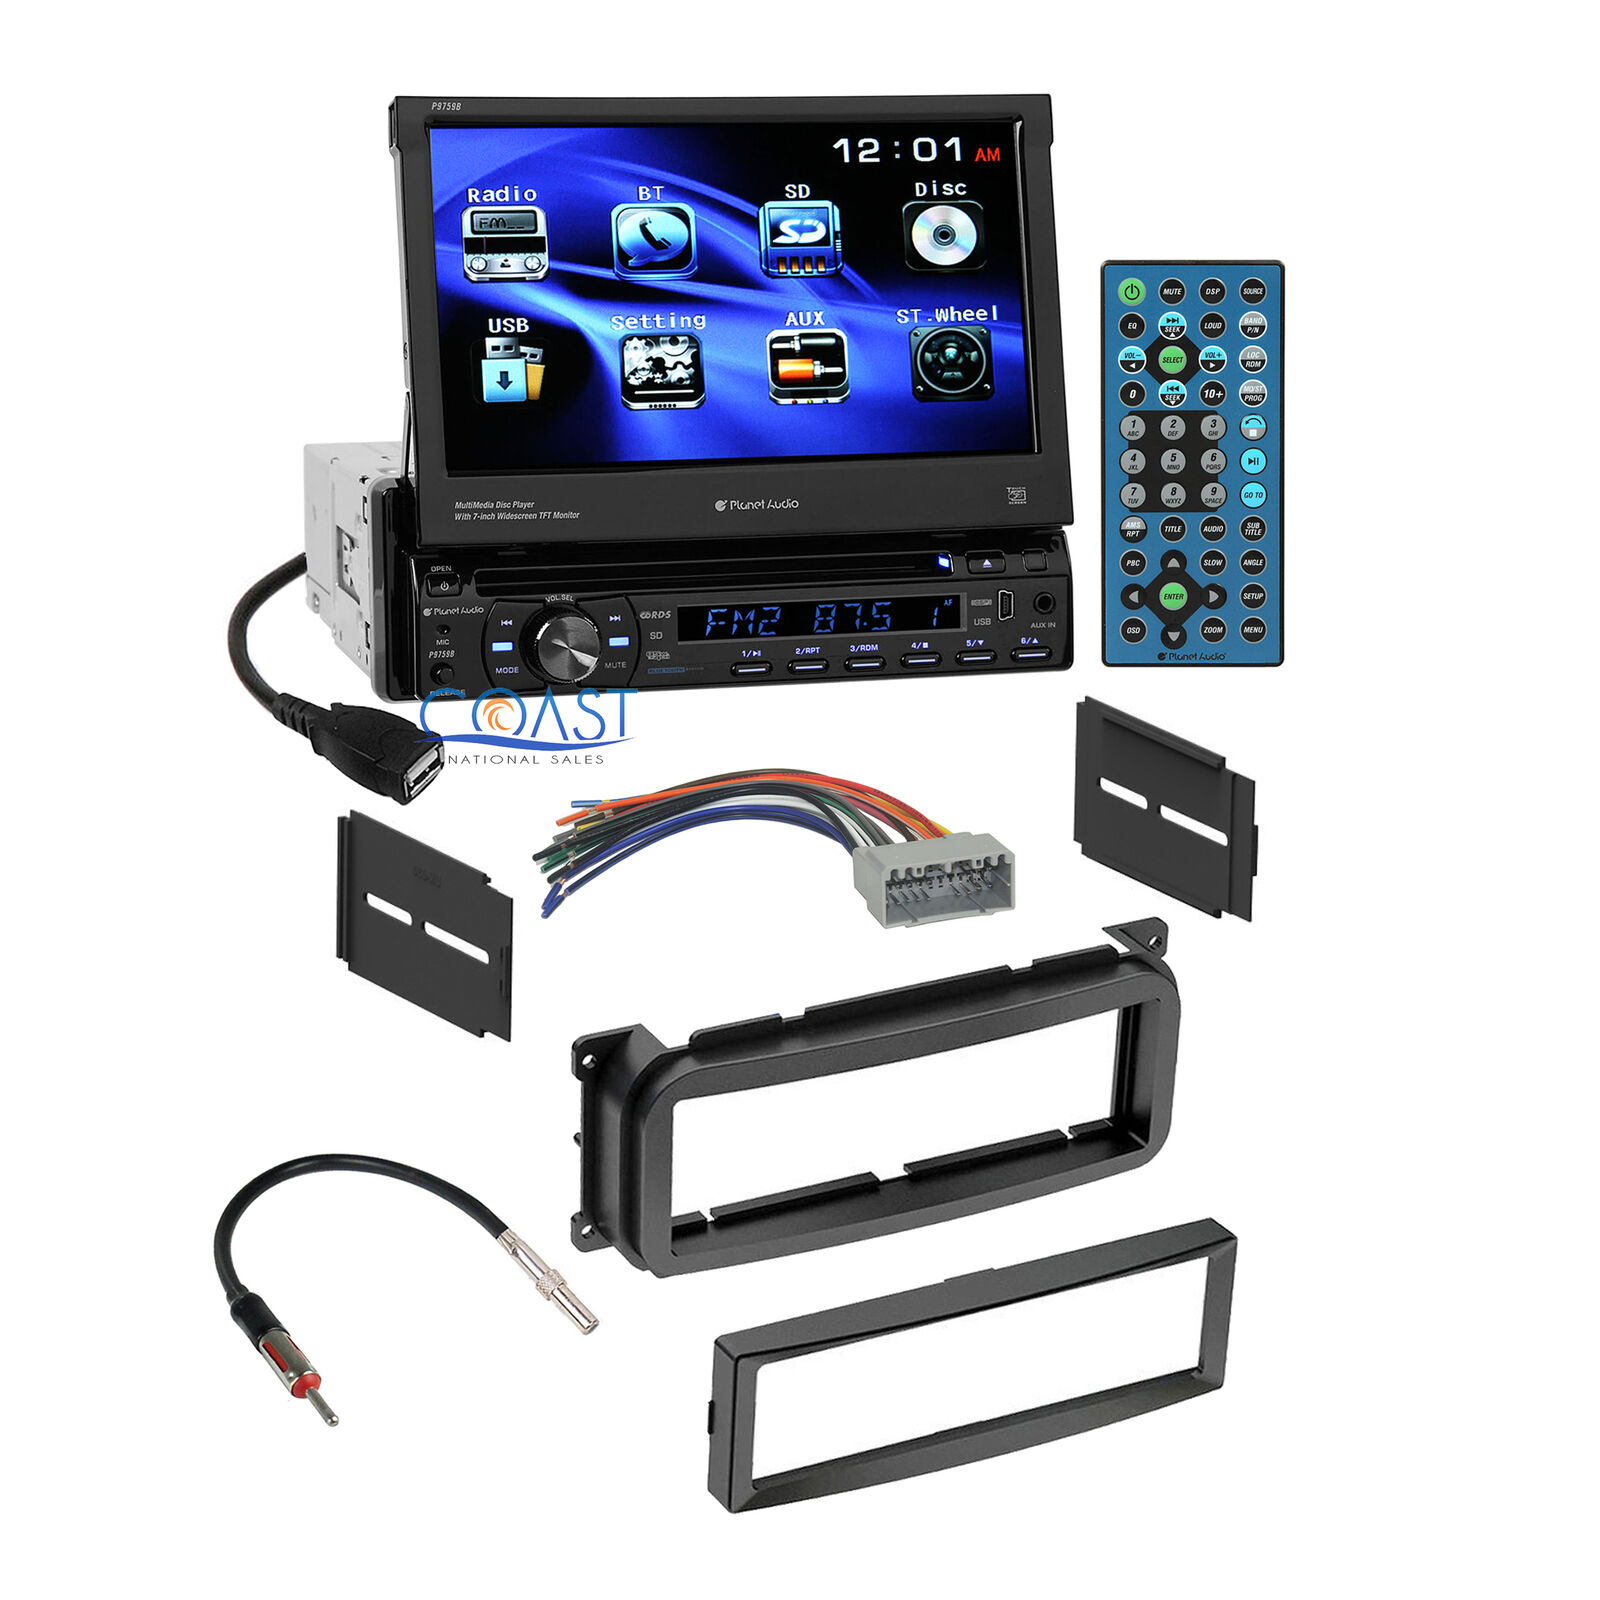 Planet Audio Touchscreen Radio Stereo Dash Kit Harness For Chrysler Jeep Accessories Dodge 1 Of 6free Shipping See More